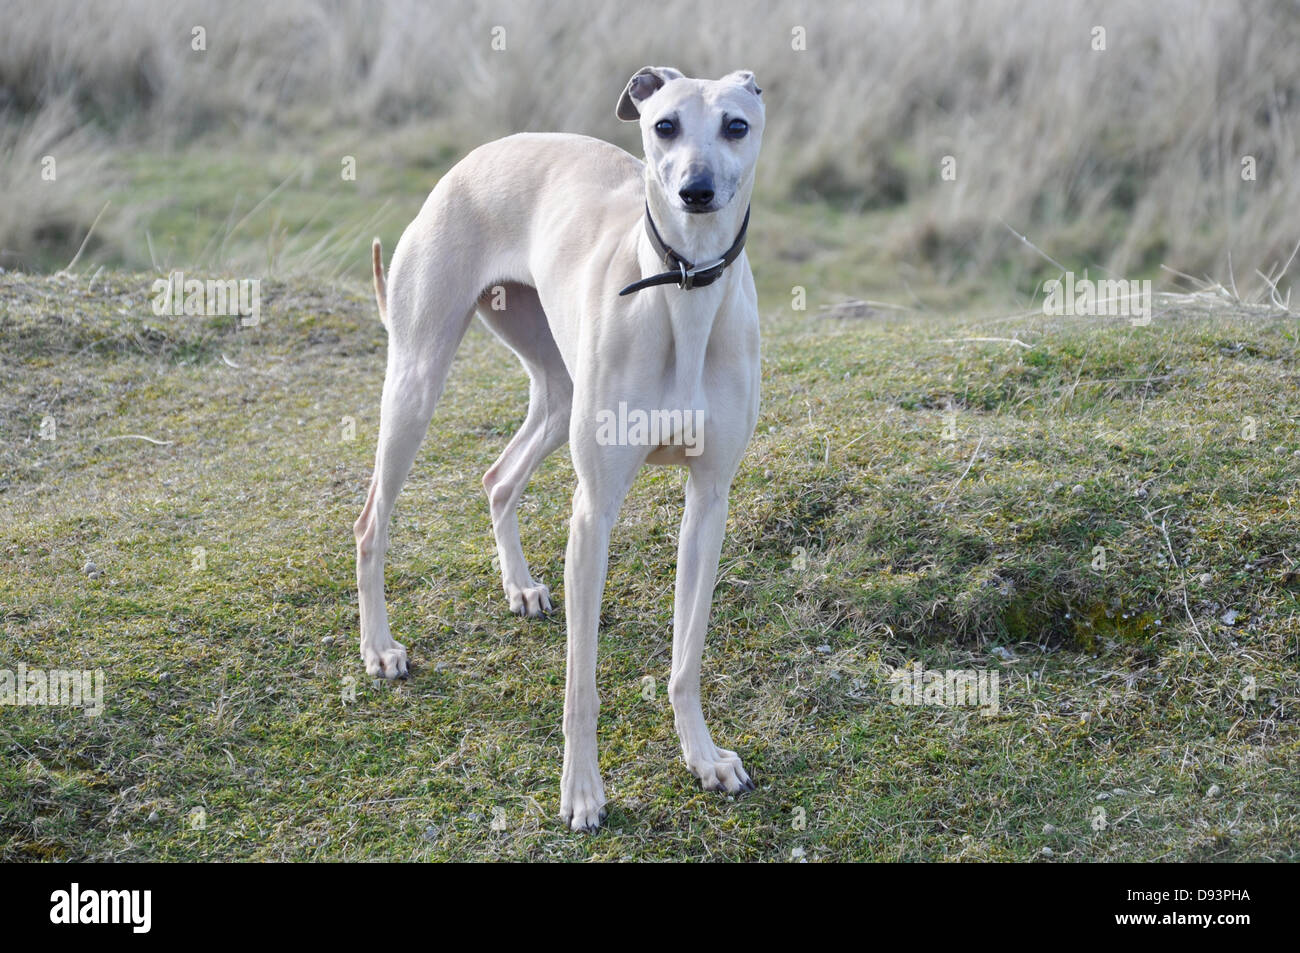 white whippet gun dog race dog standing still posed on a green grass hill looking at camera UK - Stock Image